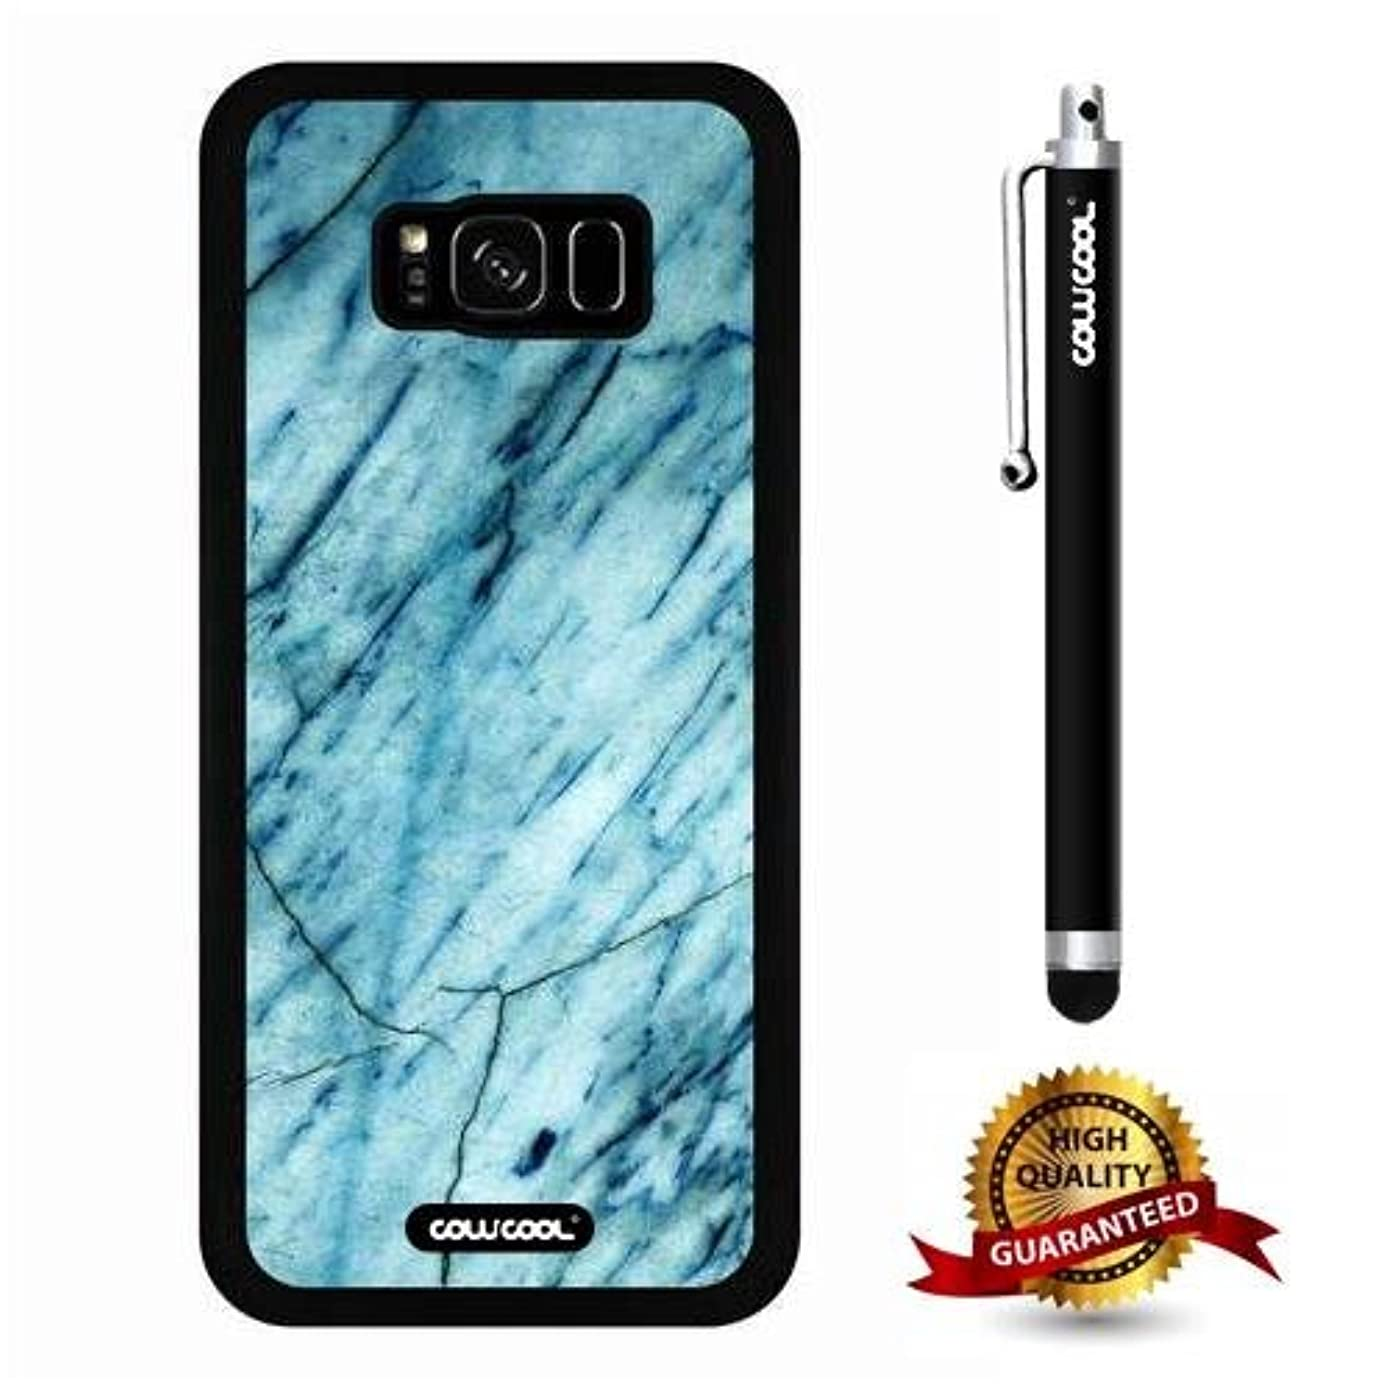 Galaxy S8 Plus Case, Marble Pattern Case, Cowcool Ultra Thin Soft Silicone Case for Samsung Galaxy S8 Plus - Slash Grid Marble Texture